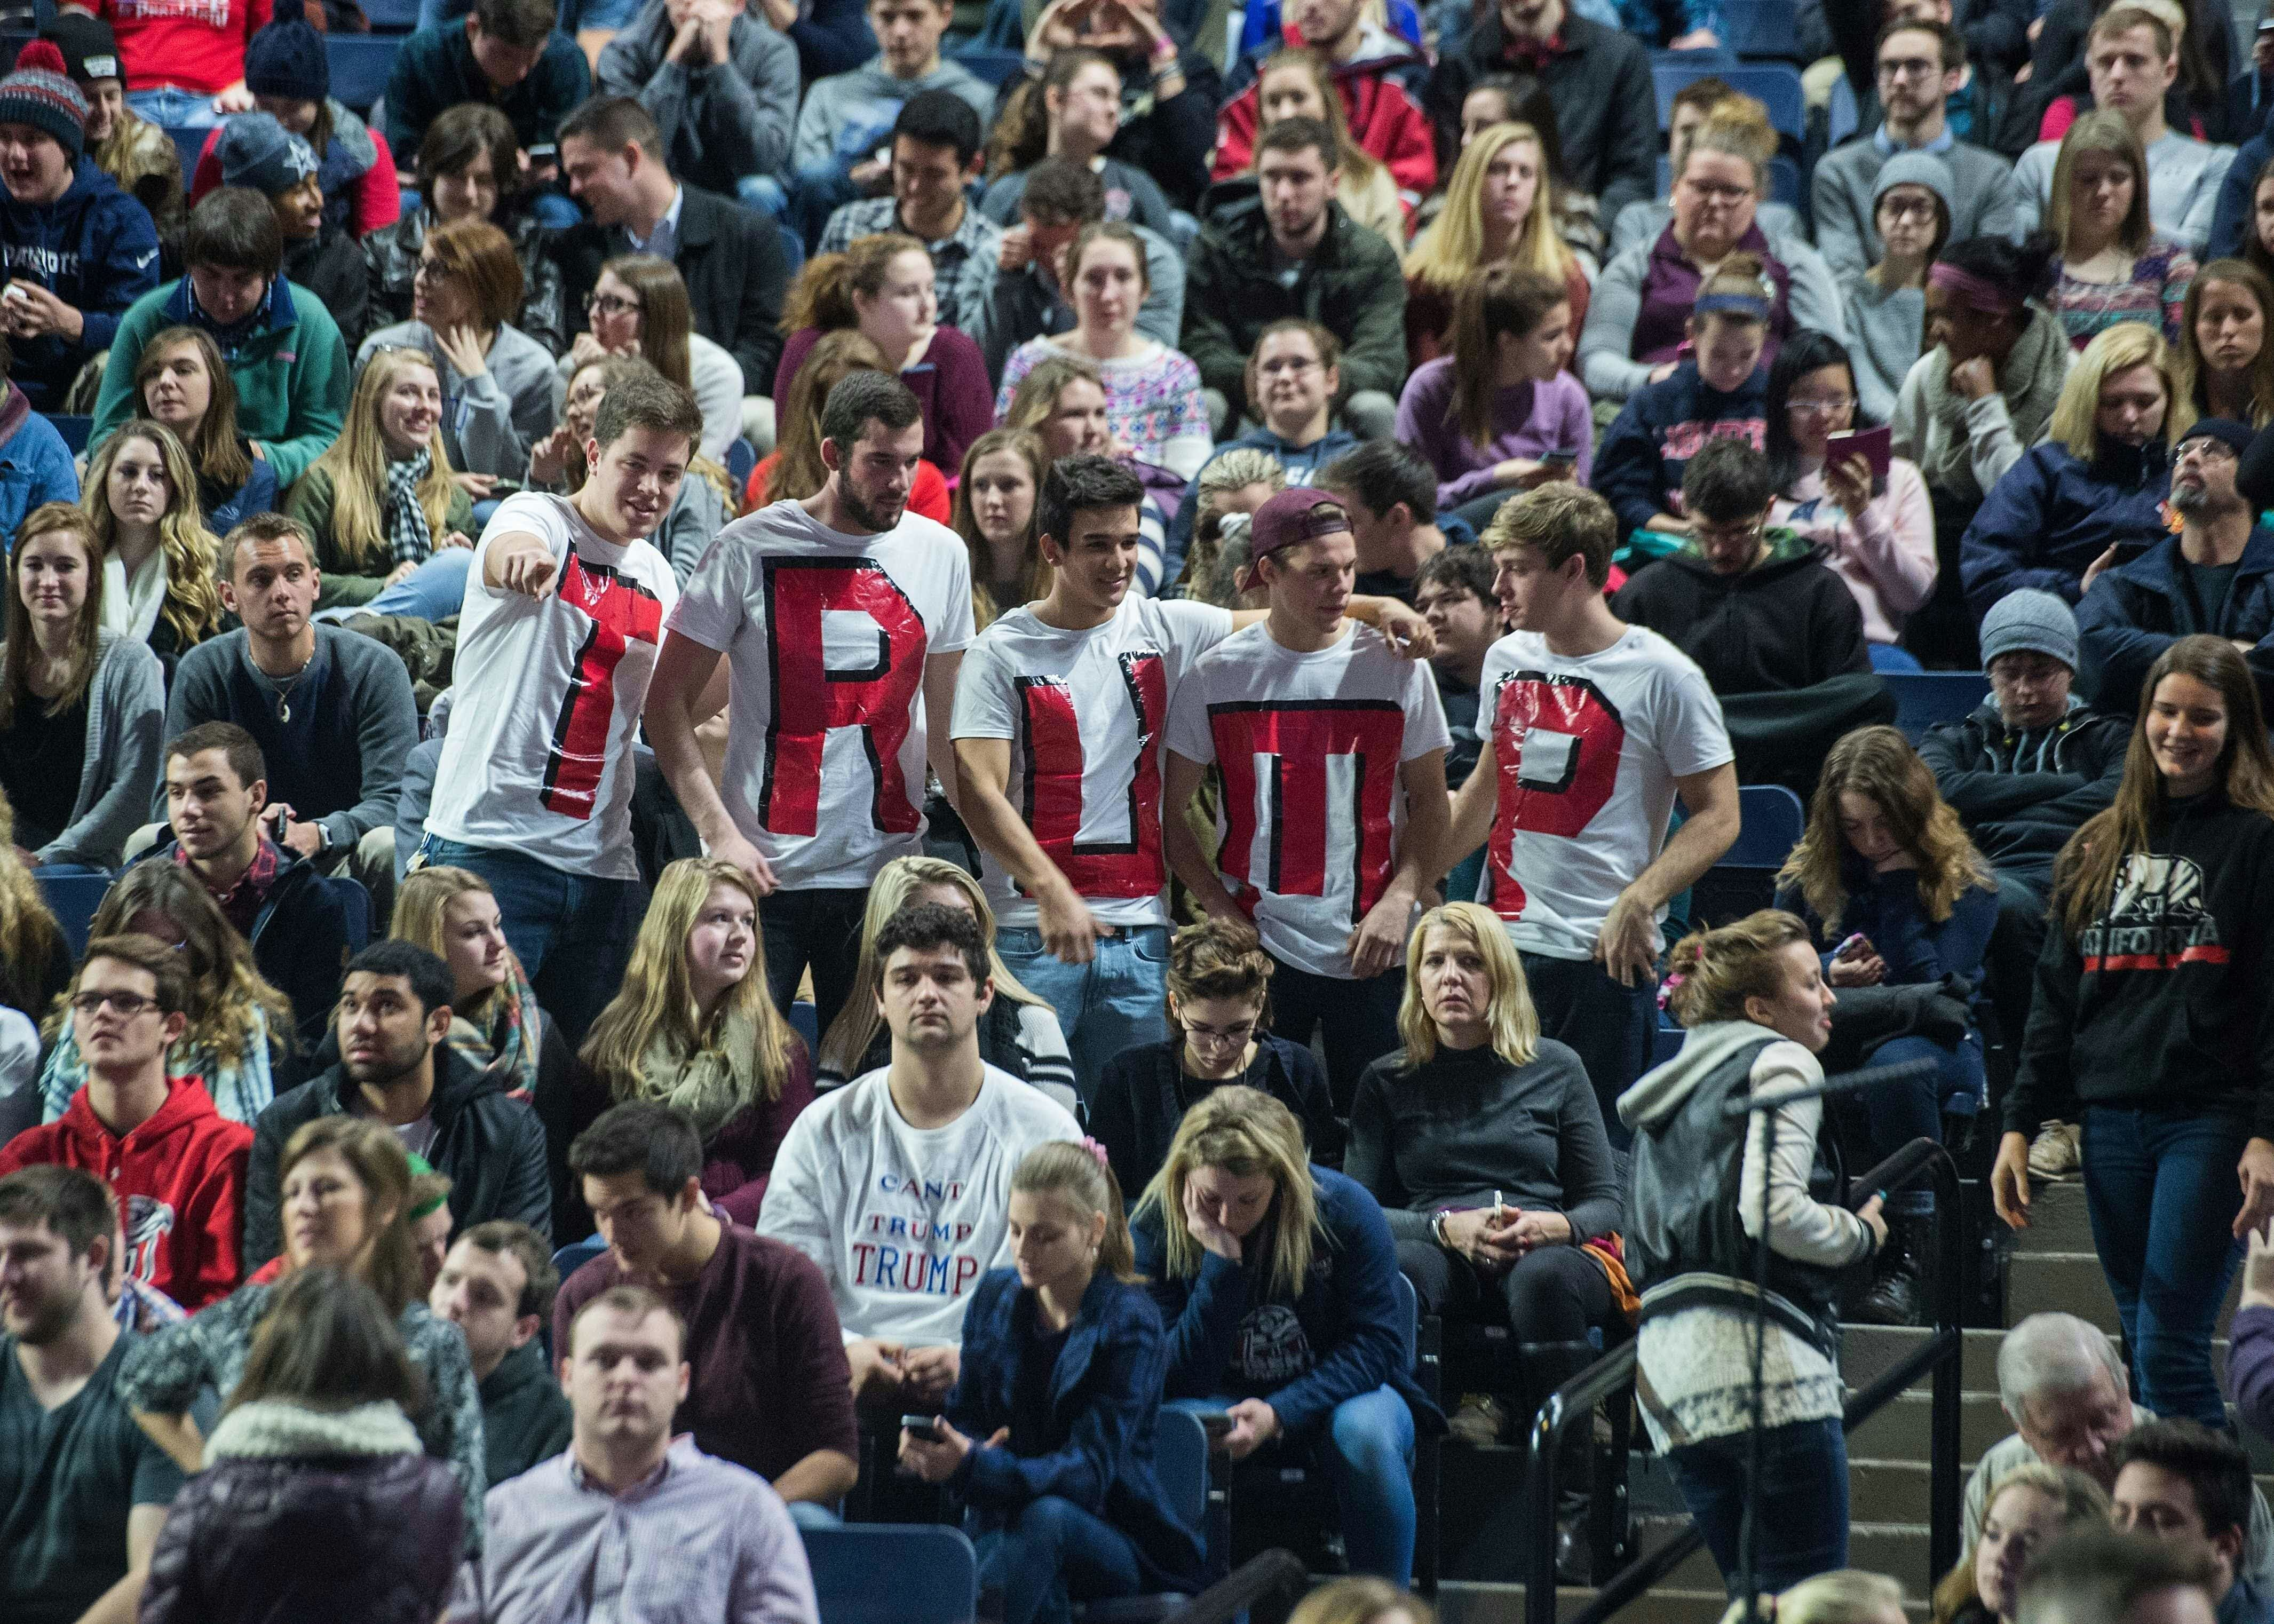 Supporters of Republican presidential candidate Donald Trump attend a rally at Liberty University in Lynchburg, Virginia, on